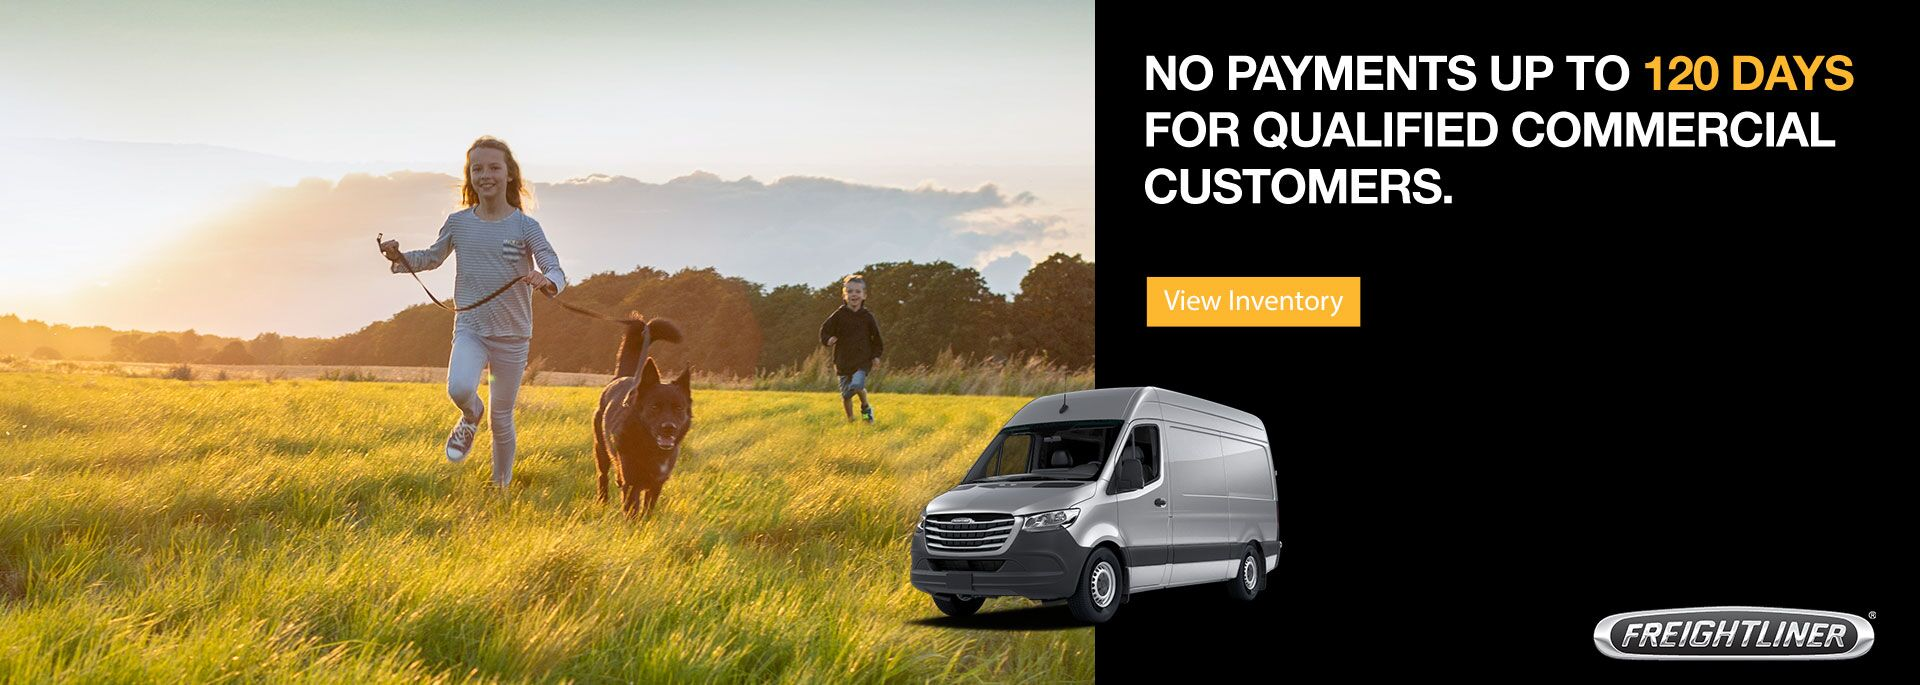 Freightliner Payment Deferral